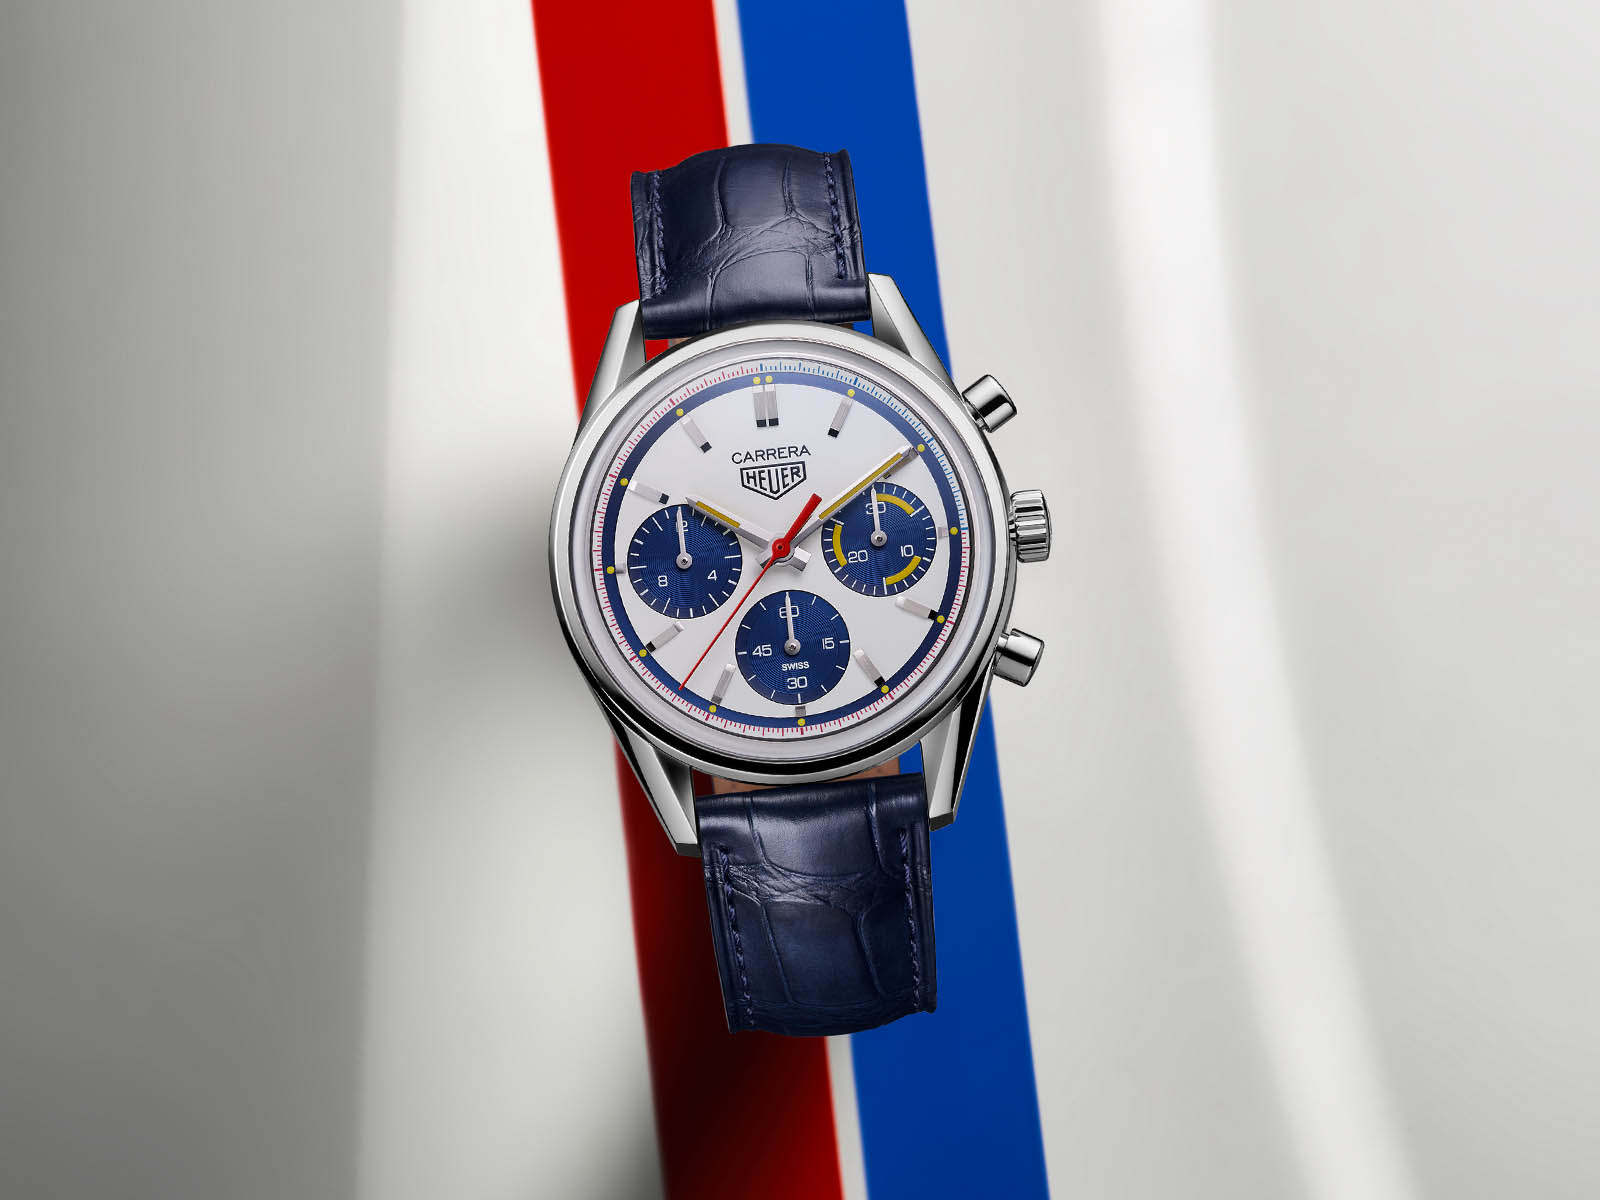 cbk221c-fc6488-tag-heuer-carrera-160-years-montreal-limited-edition-2.jpg